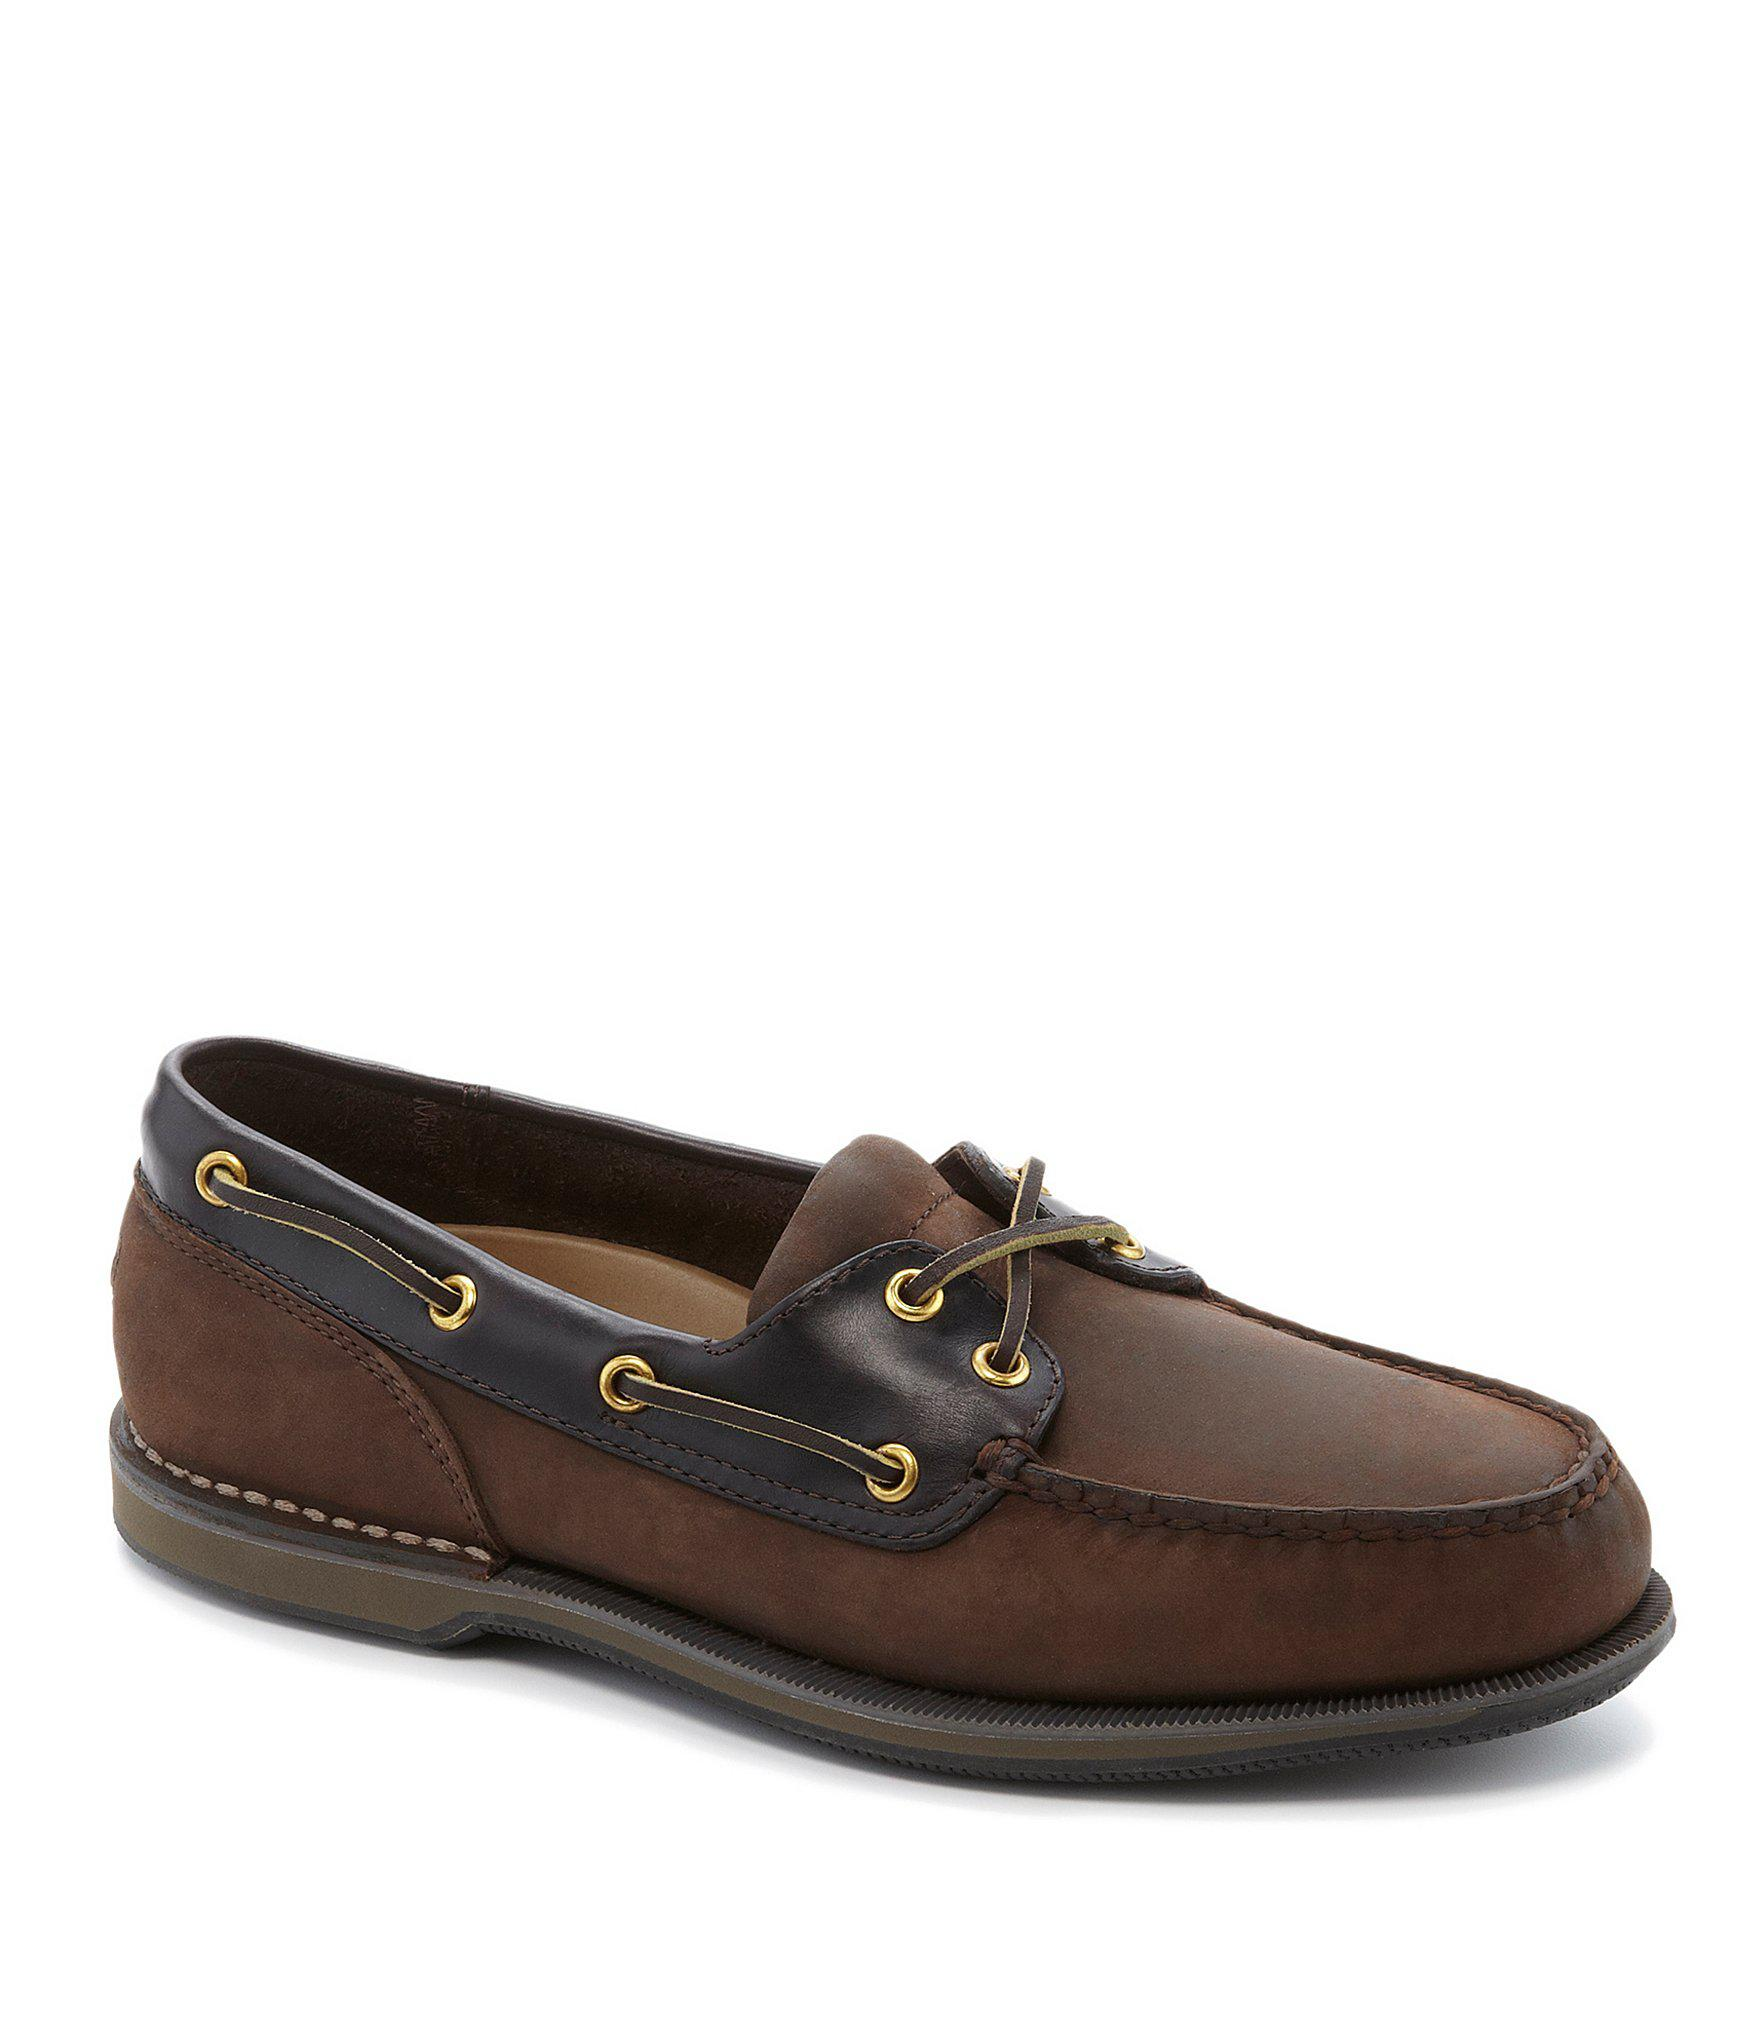 578c7ec1fa Lyst - Rockport Perth Casual Boat Shoes in Brown for Men